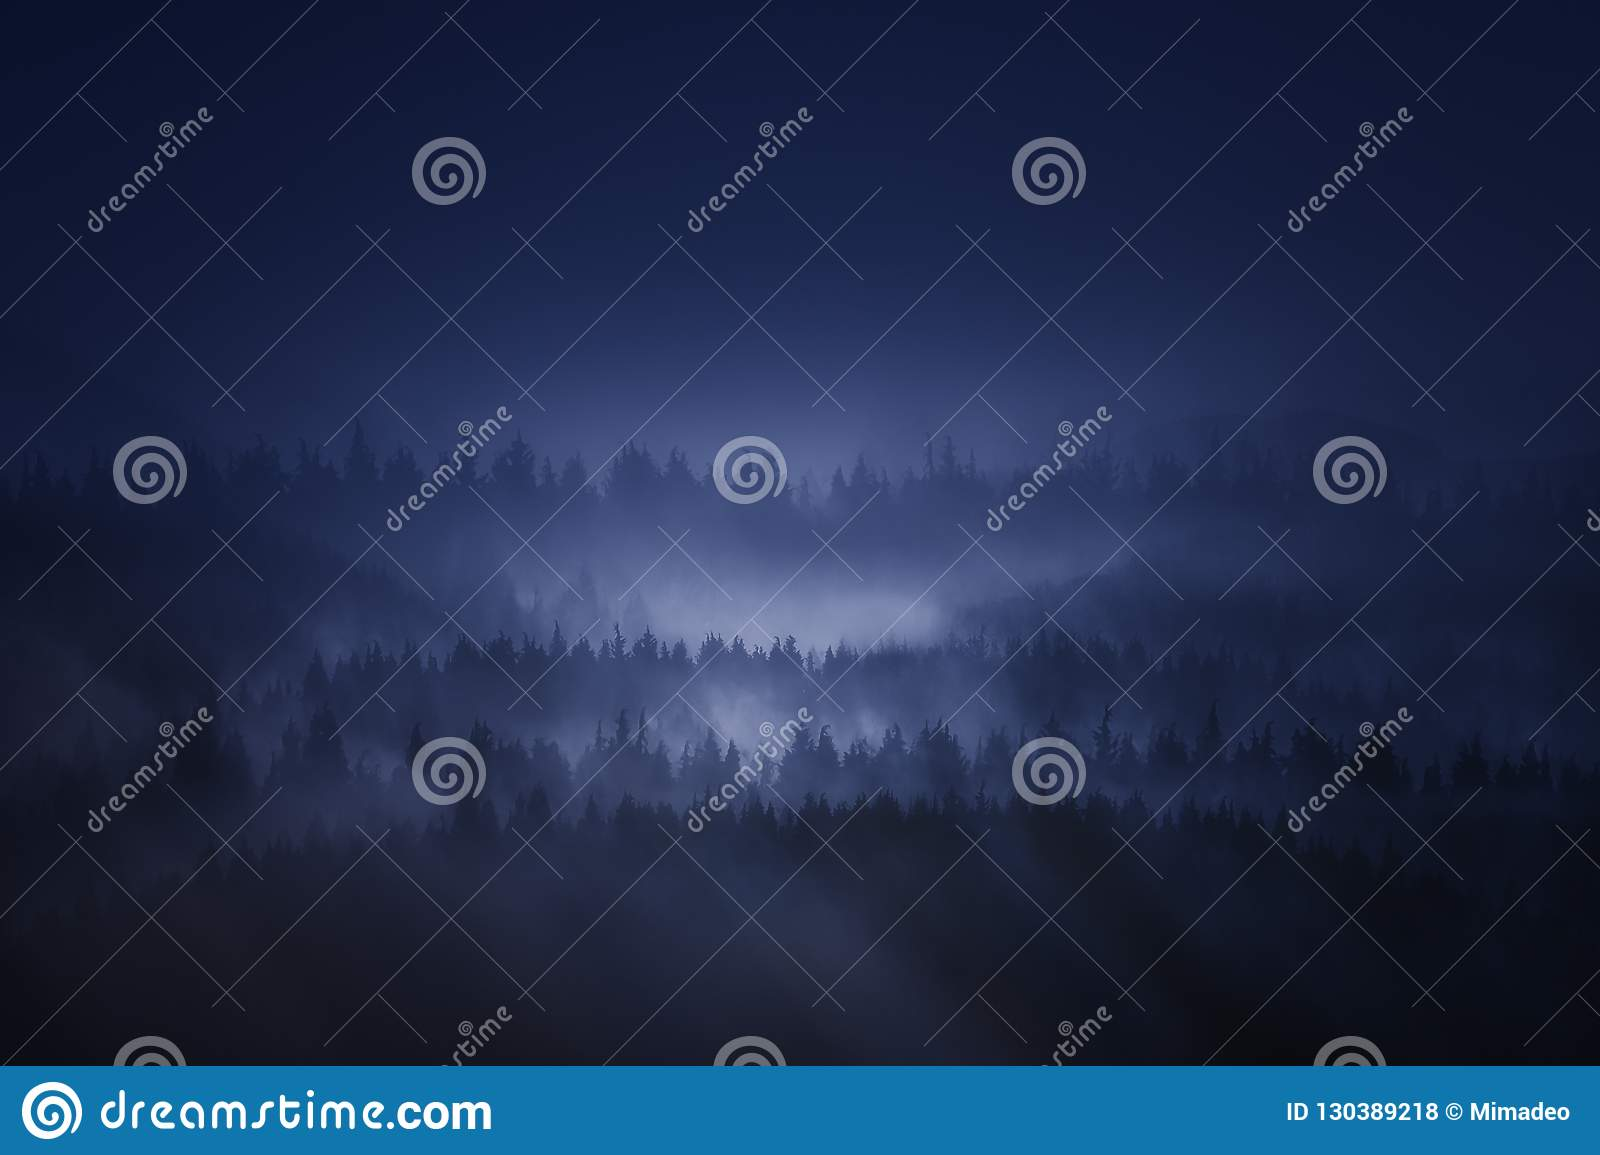 Dark forest in the mountain at night